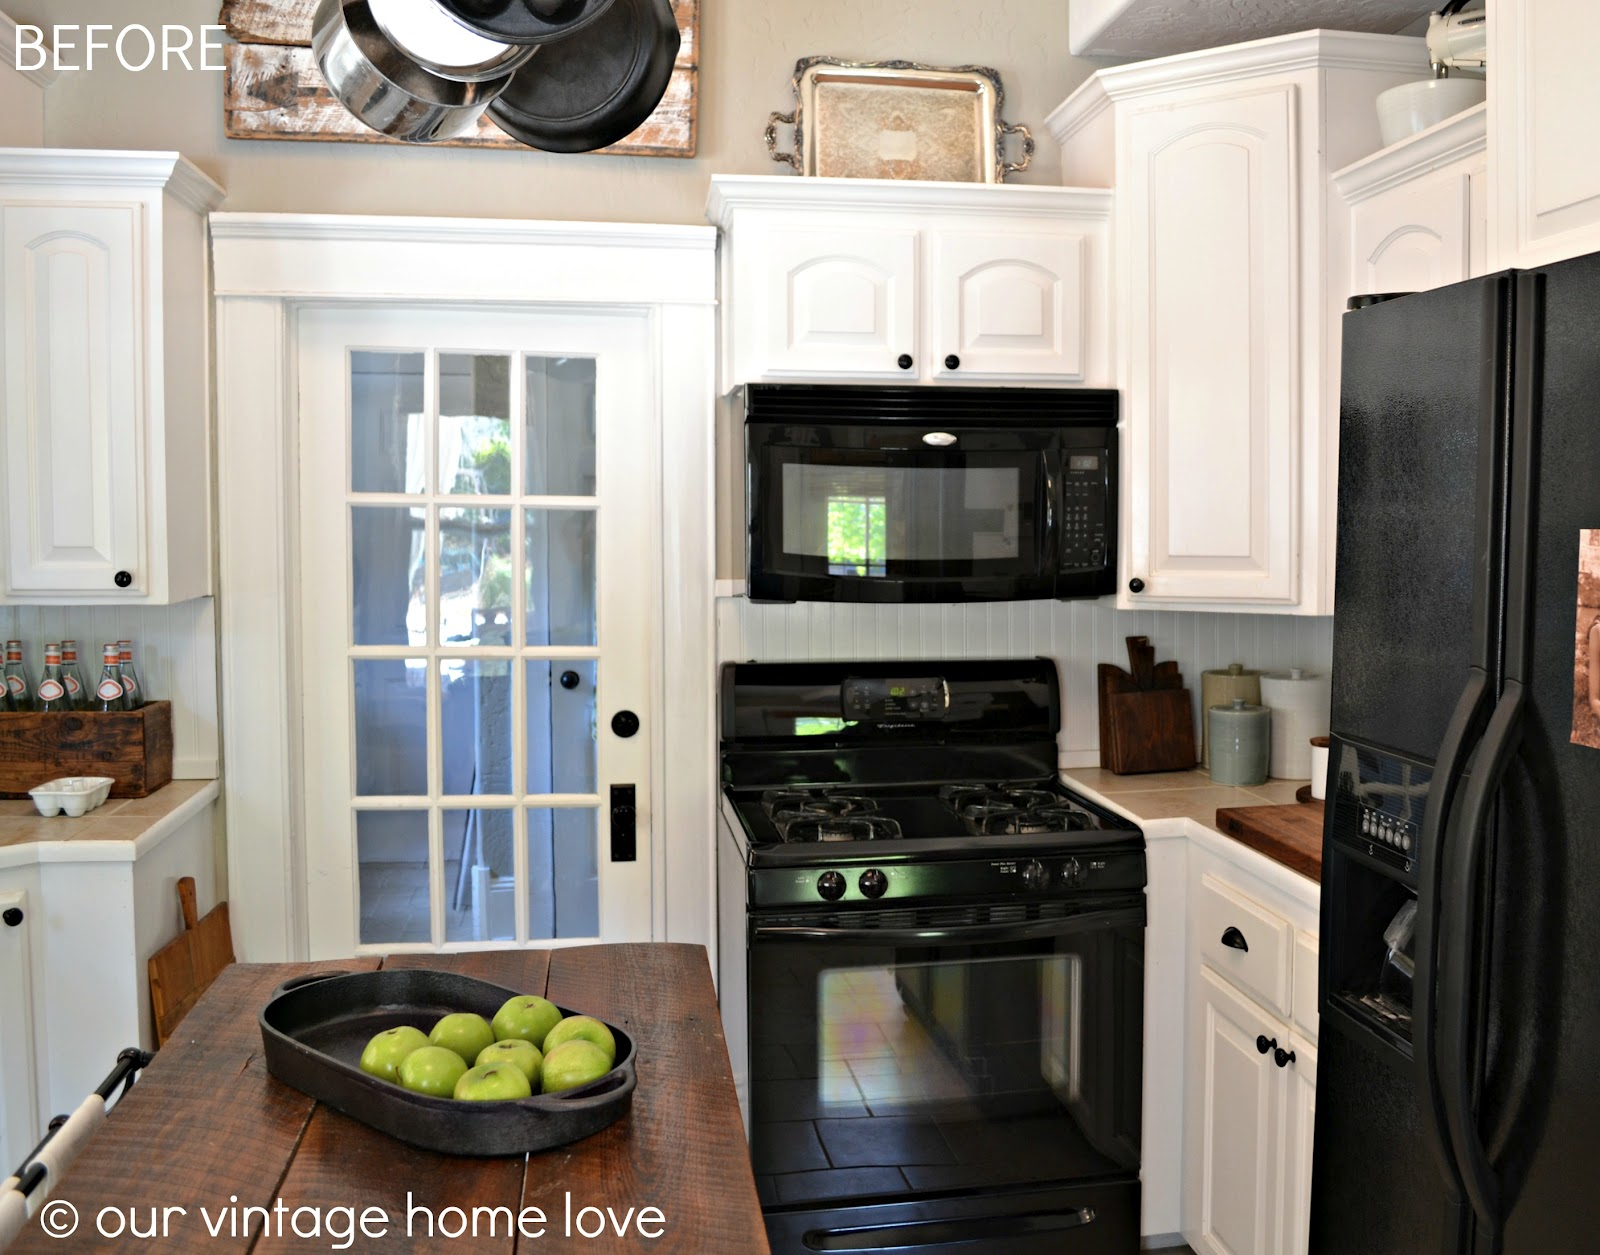 amazing Big Lots Kitchen Appliances #8: Images of Big Lots Kitchen Appliances